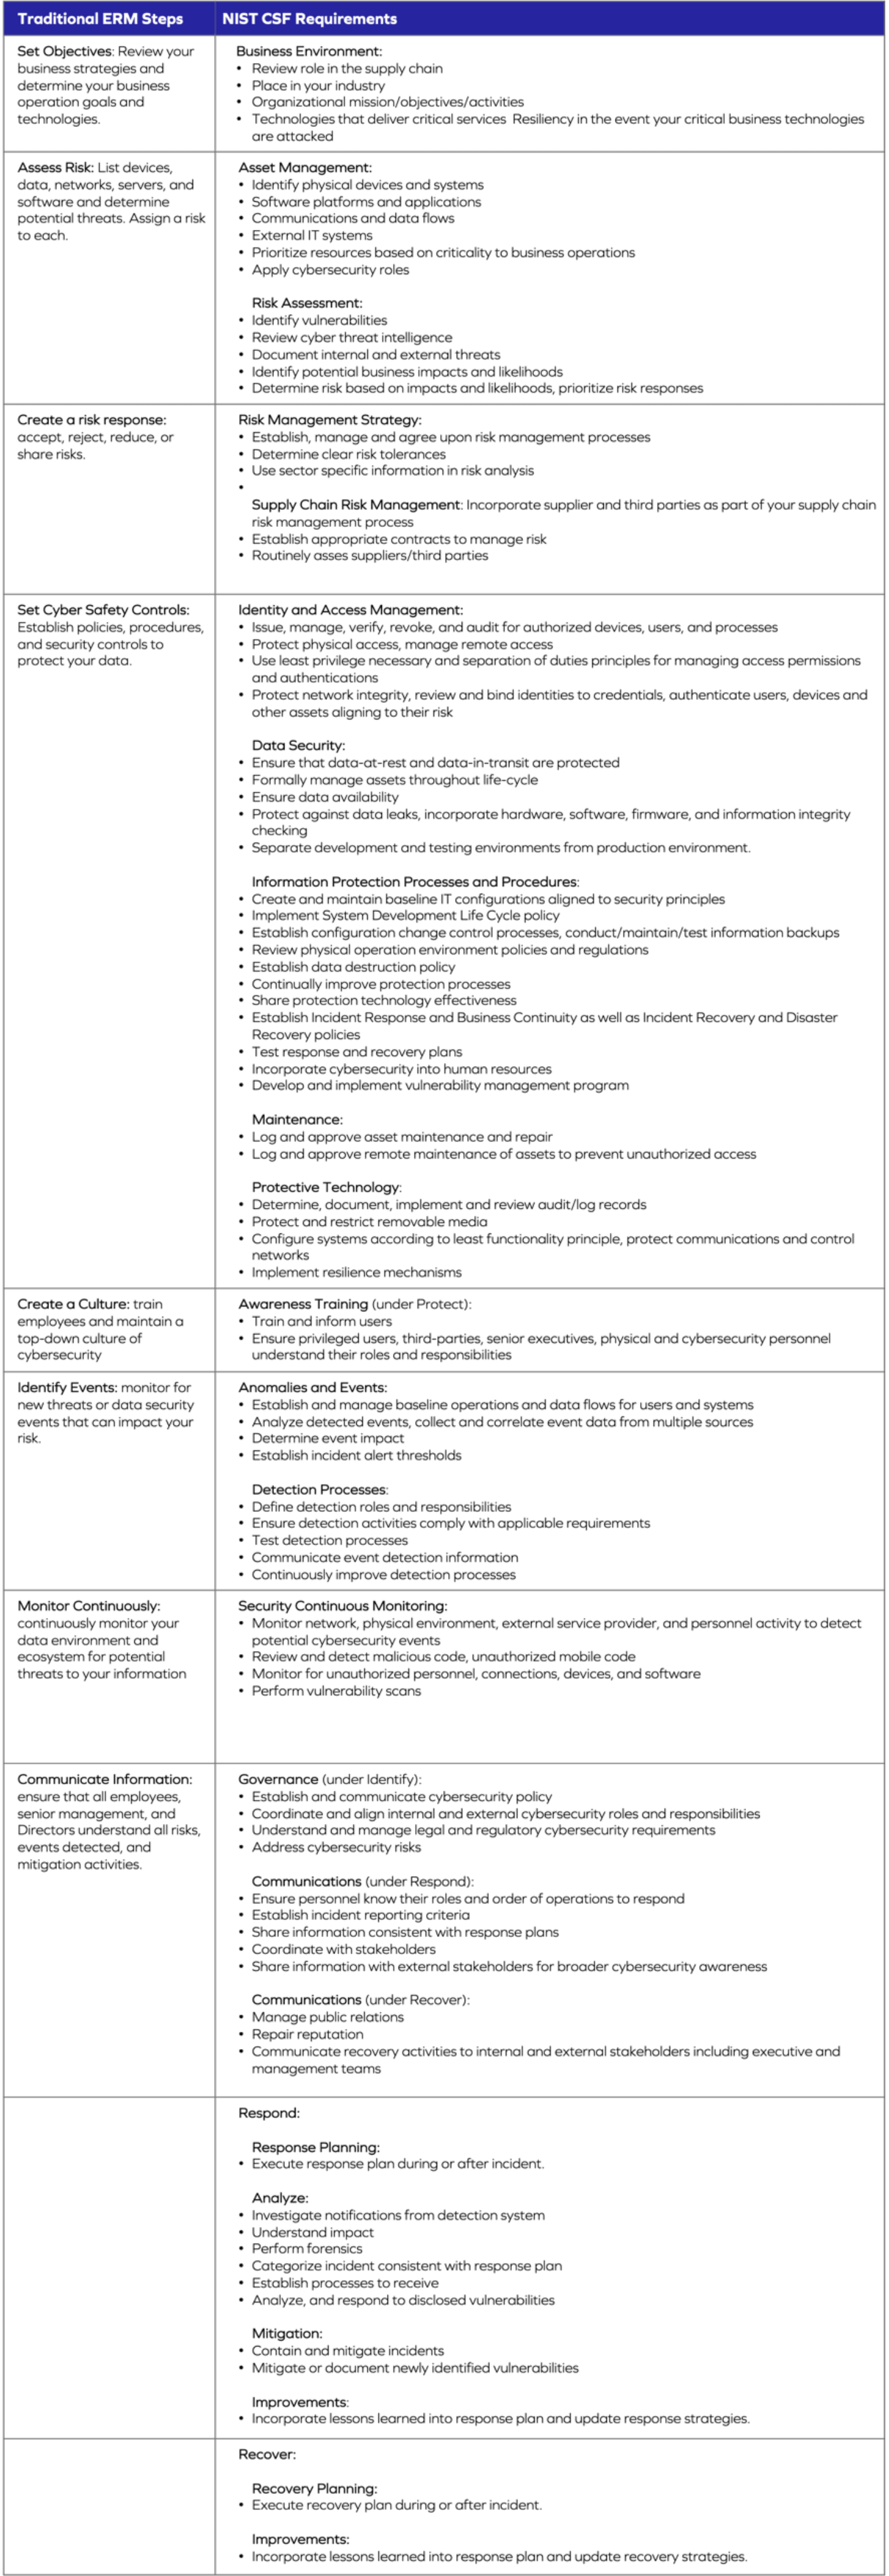 NIST Requirements / Traditional ERM Steps